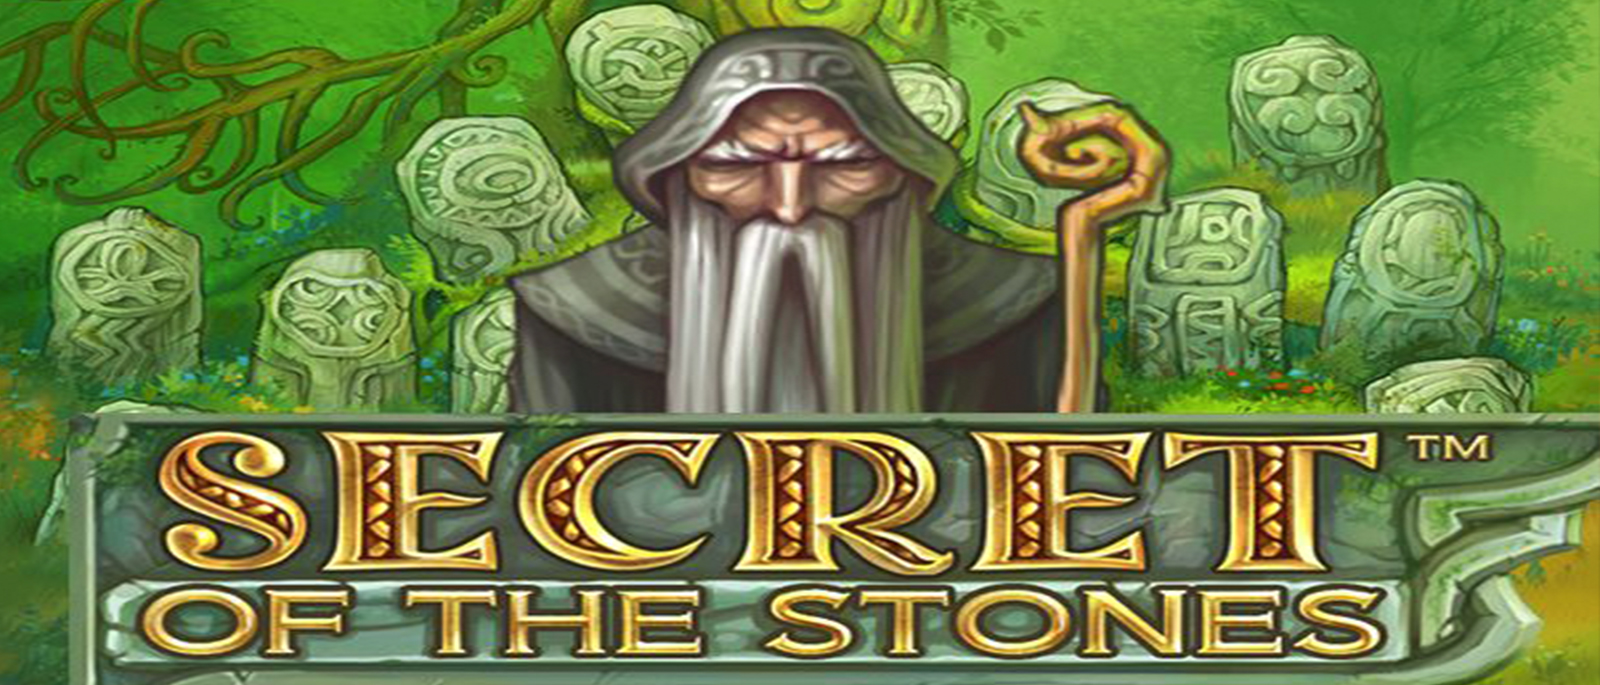 Secret of the Stones slots - spil Secret of the Stones slots